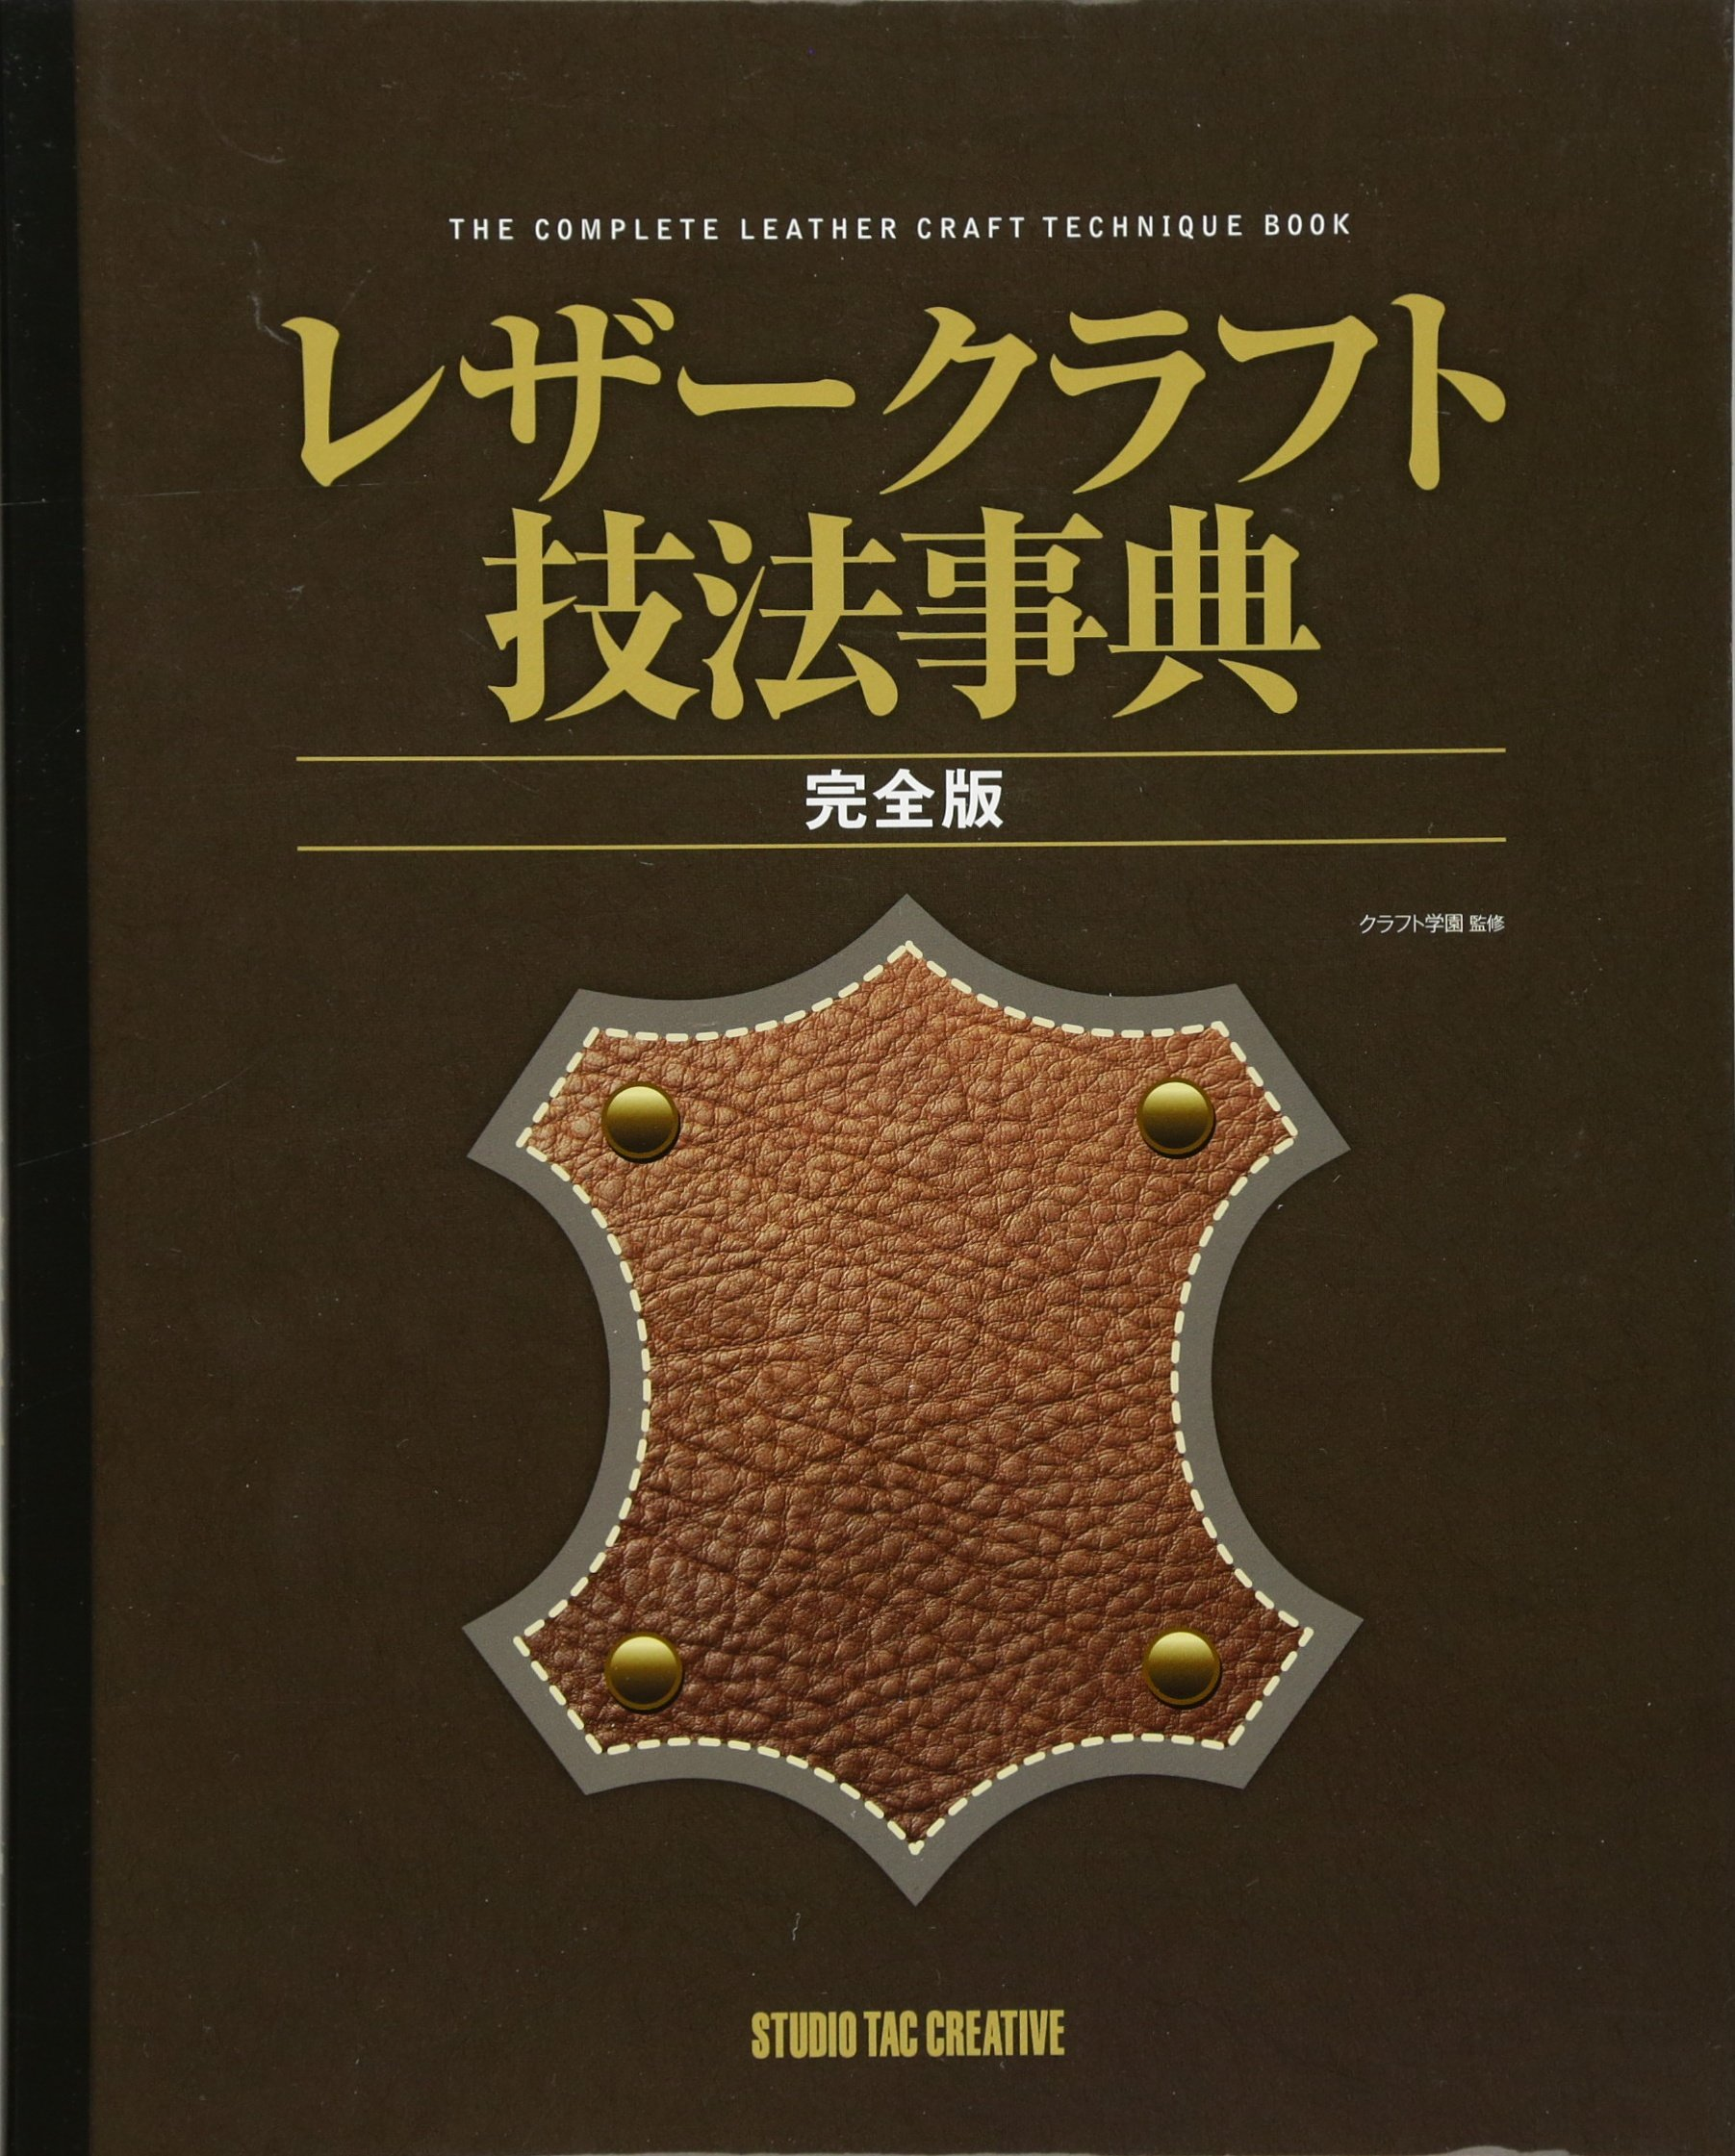 Leather craft technique encyclopedia full version (2012) ISBN: 4883935779 [Japanese Import] PDF